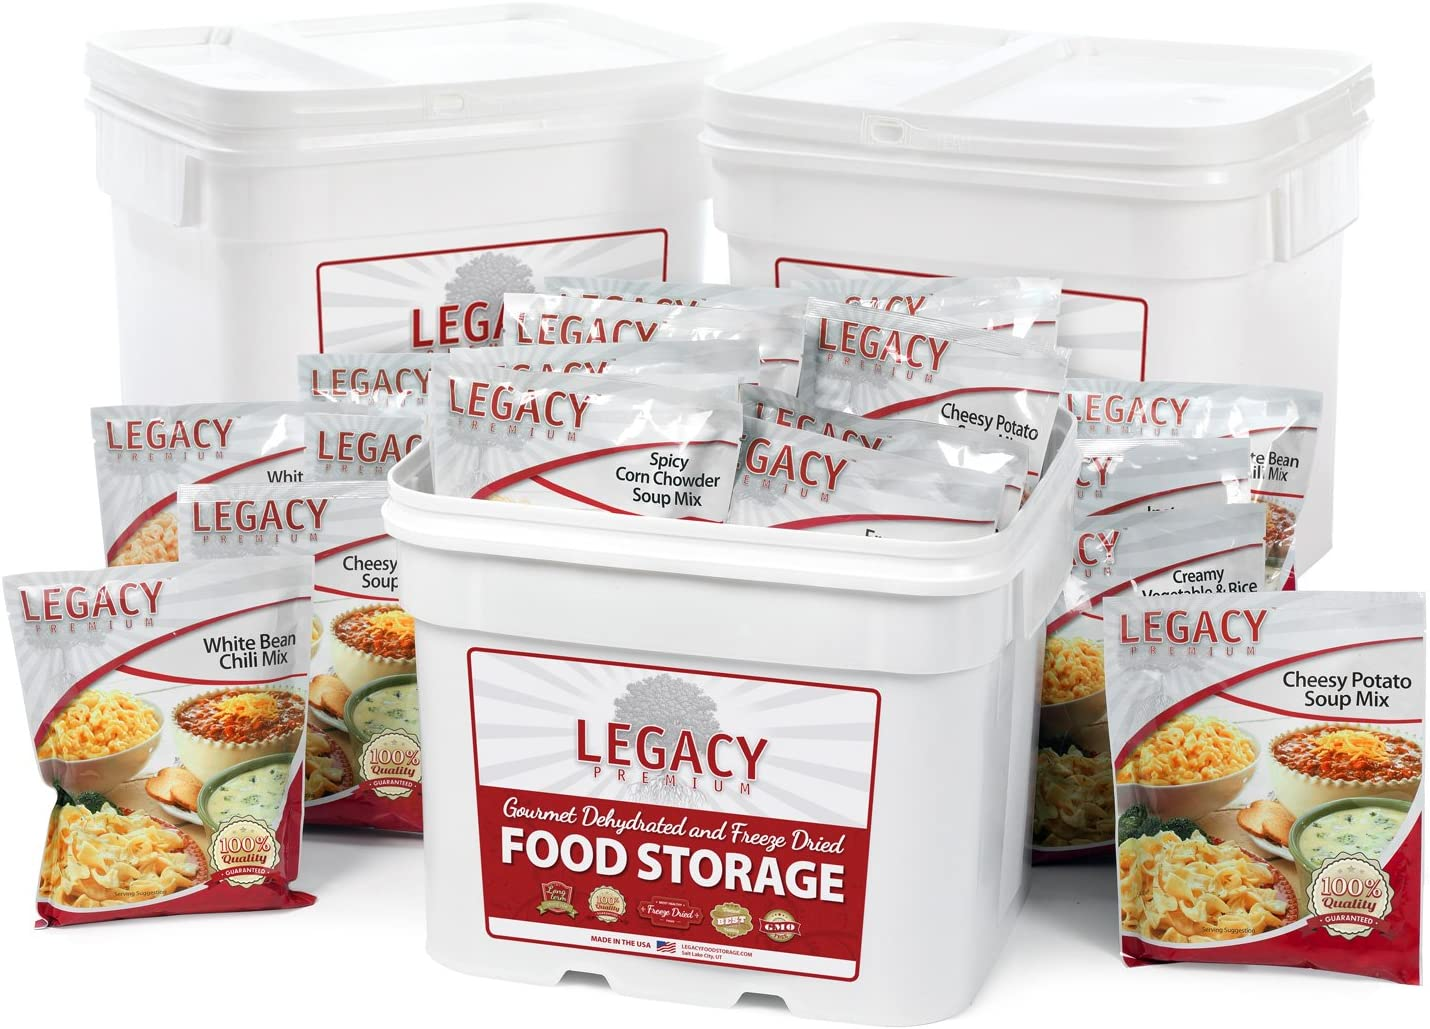 Freeze Dried Survival Food Storage Meals: 360 Large Servings 93 lbs - Emergency Disaster Insurance Preparedness Supply - 25 Year Life: Also for Hiking, Camping